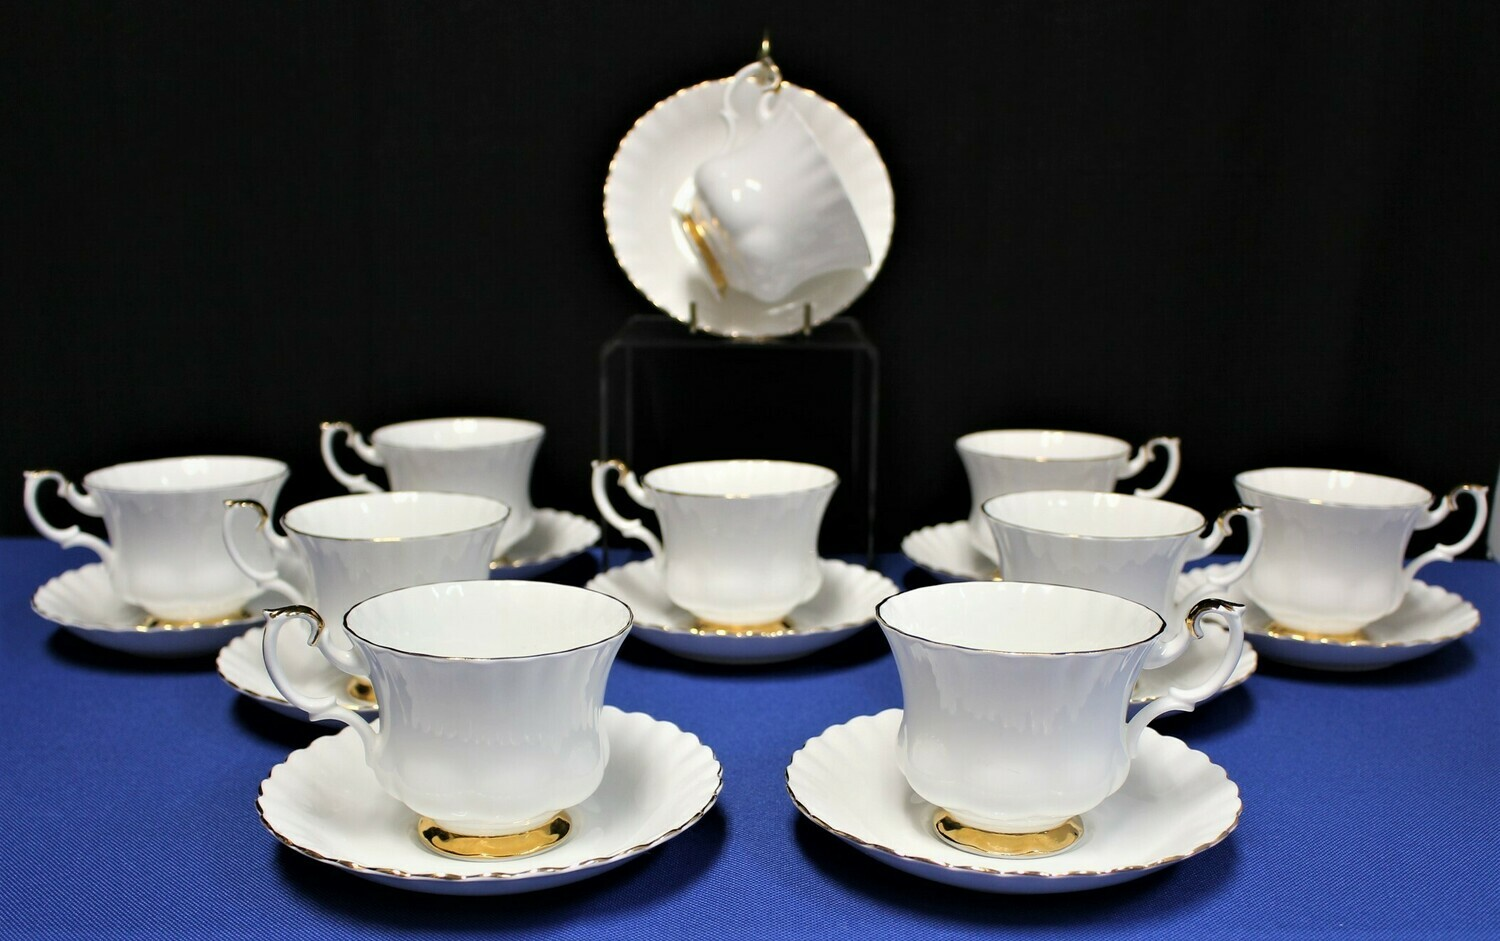 20-Piece Royal Albert Val D'or Bone China 22Kt Gold Trim Footed Cups & Saucers